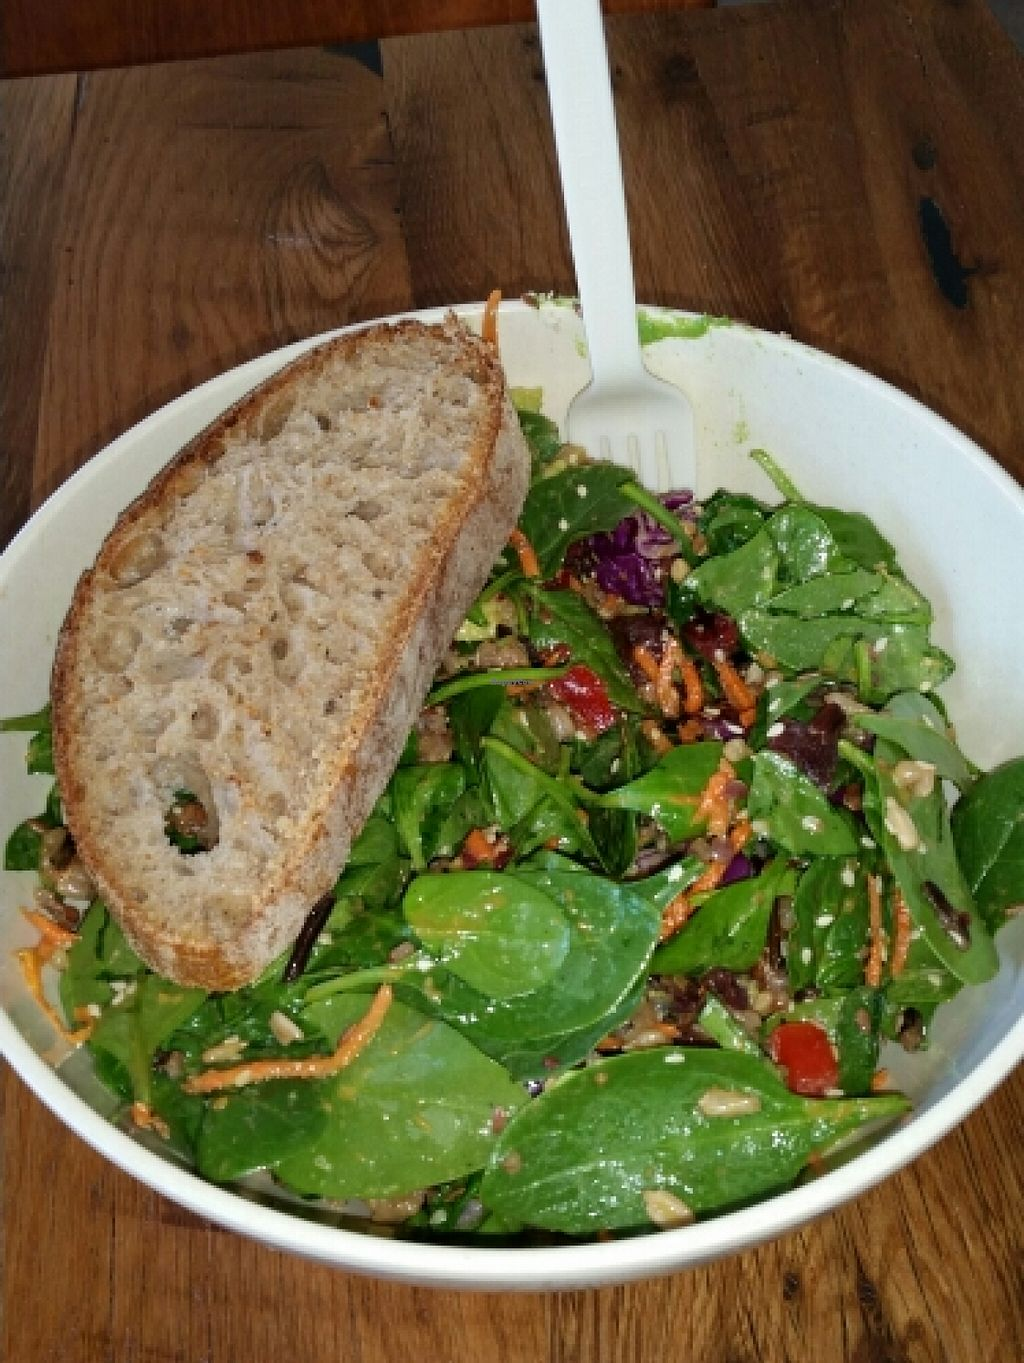 "Photo of Sweetgreen  by <a href=""/members/profile/Kplant"">Kplant</a> <br/>WildChild <br/> November 23, 2015  - <a href='/contact/abuse/image/66210/126010'>Report</a>"